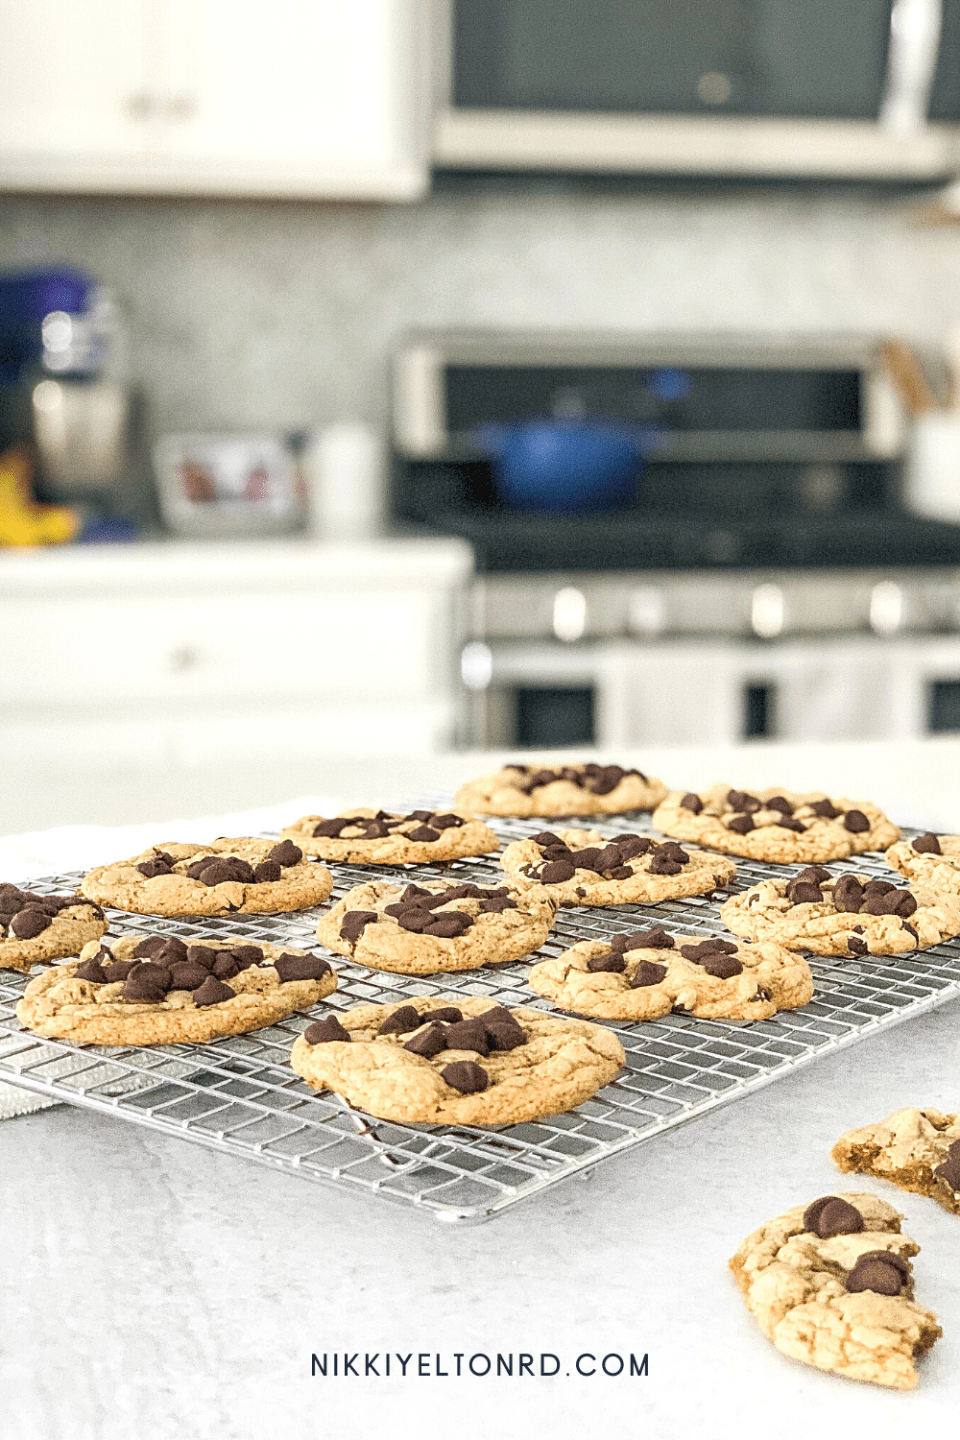 Warm grain-free chocolate chip cookies on a baking rack next to an oven